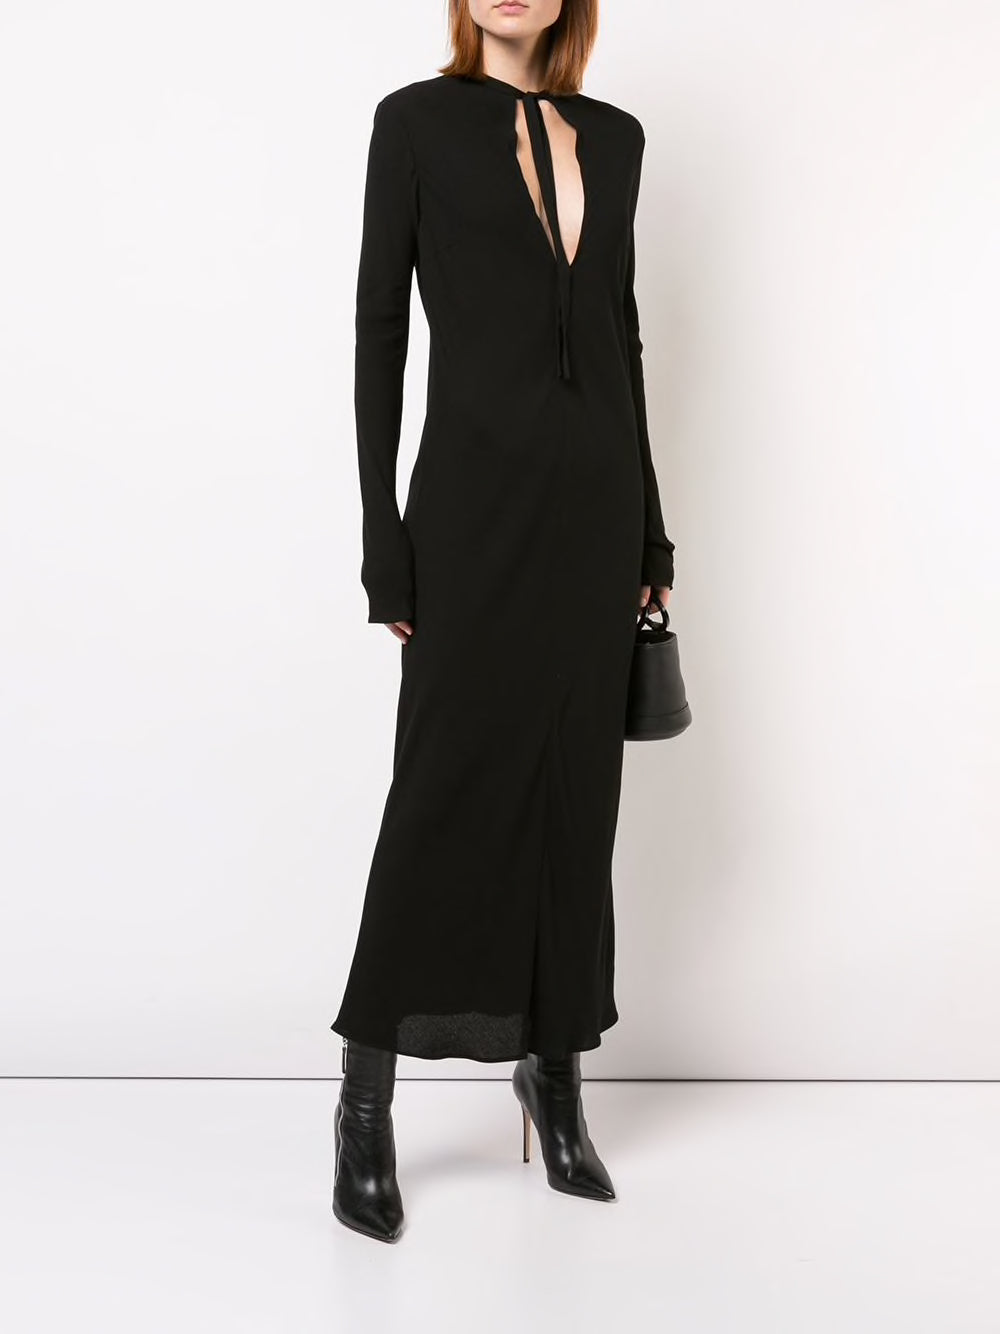 HAIDER ACKERMANN WOMEN MIDI LONG DRESS 184-2212-108-099